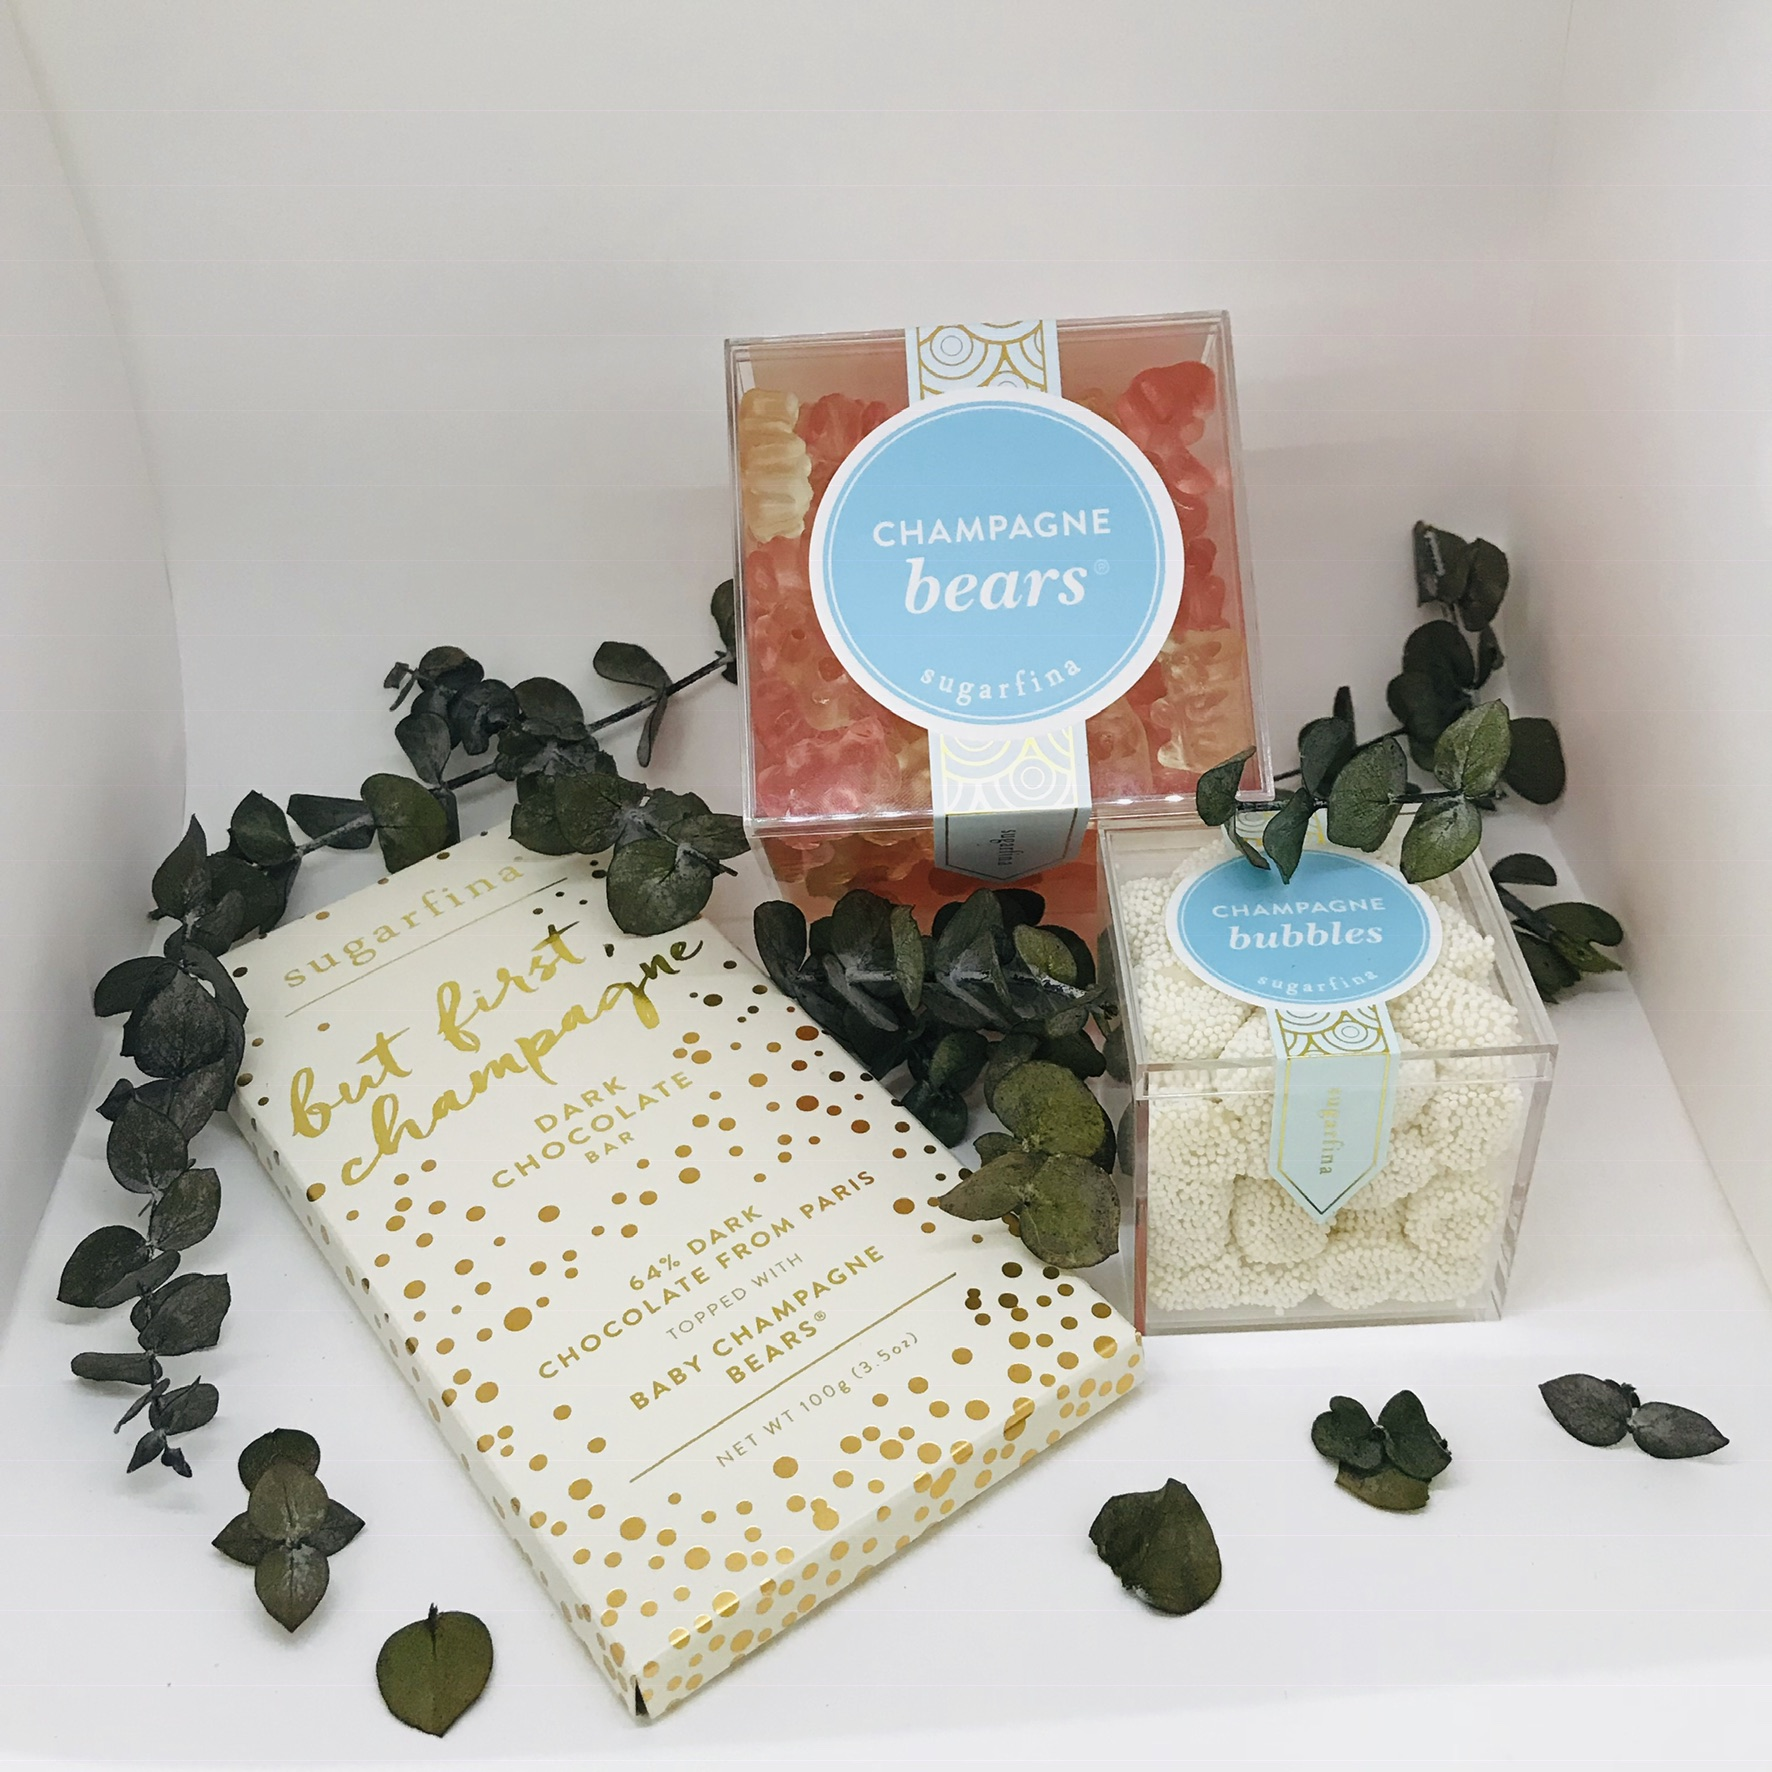 Gifts for your Boss - Win points with your boss this season with some sweets. Come shop our selection from Sugarfina the ultimate candy for grown-ups offering The Original Champagne Bears® and more cocktail-inspired treats.